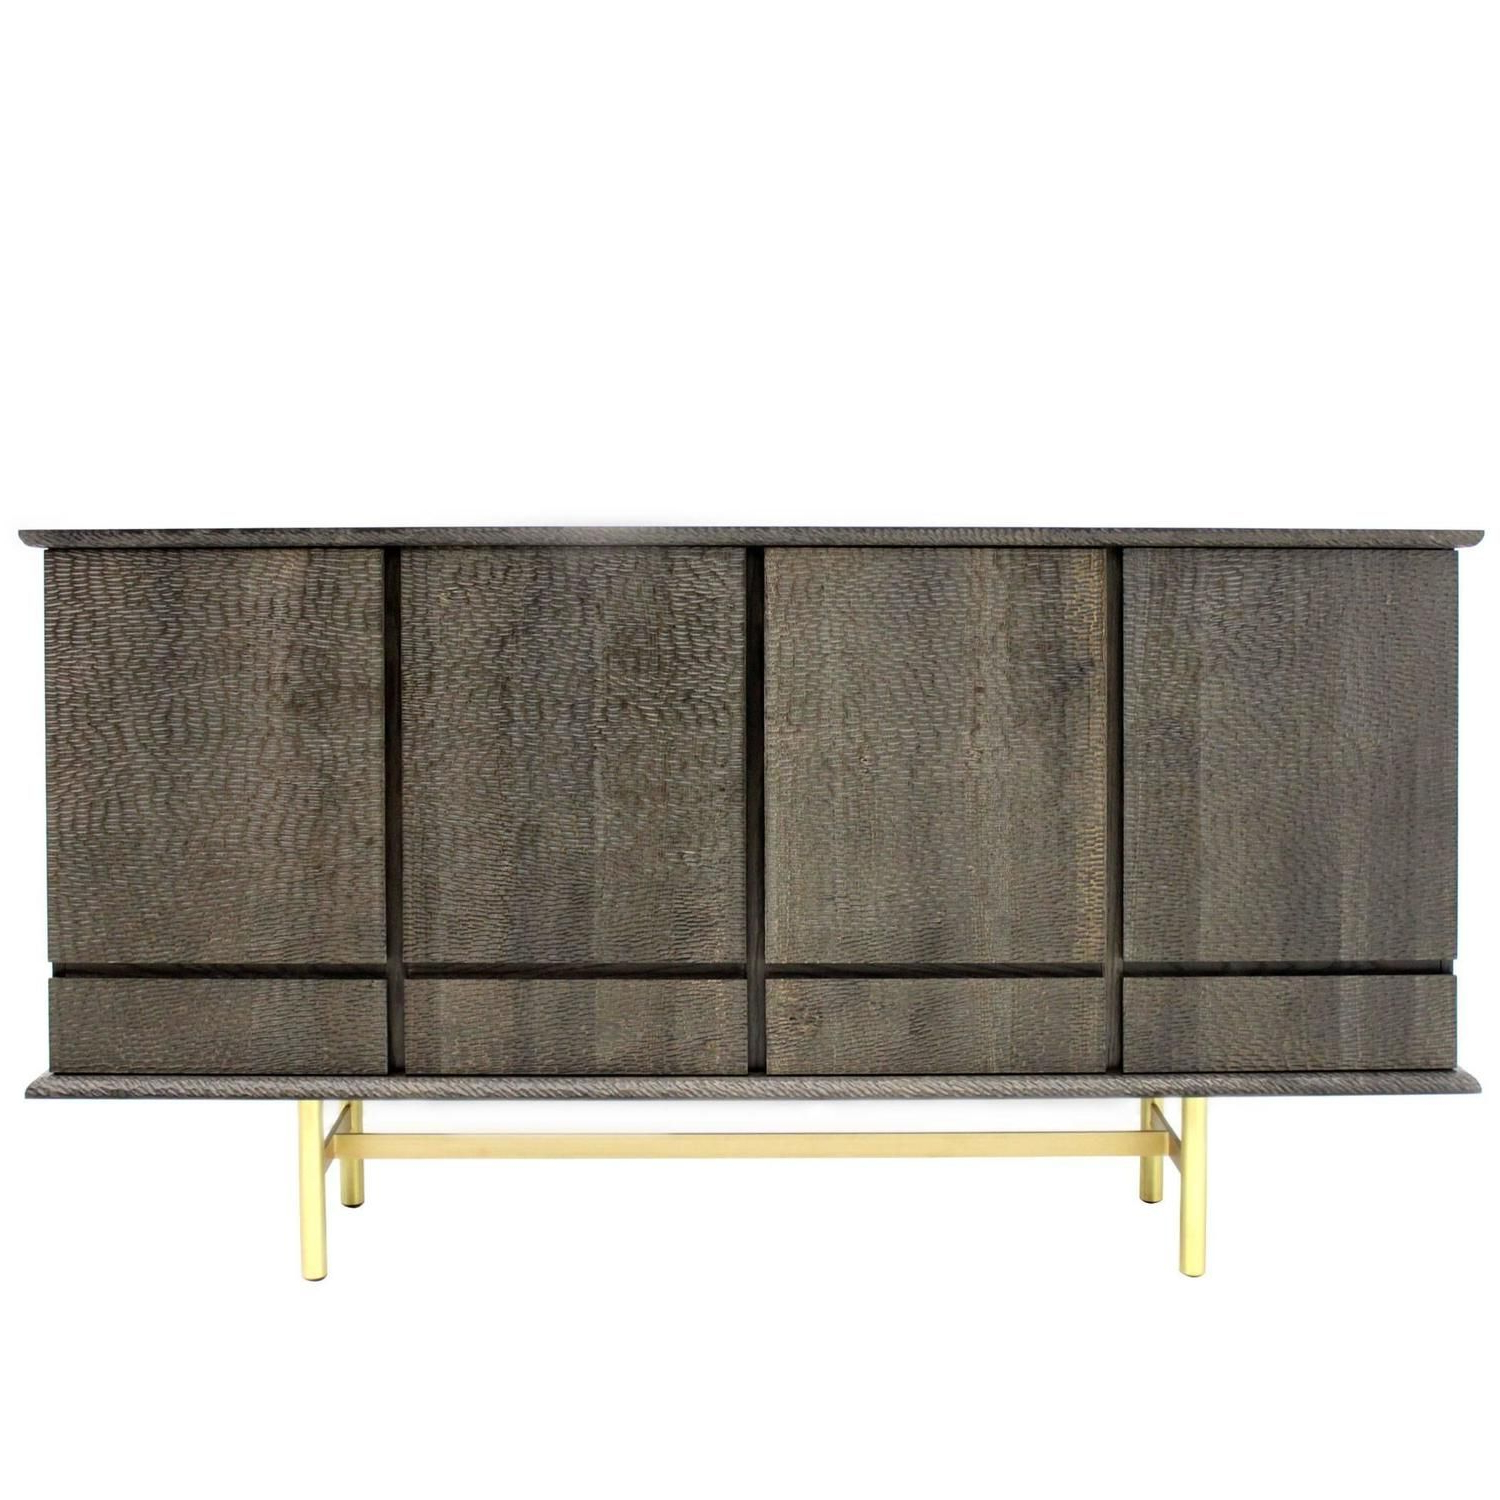 2019 Iron Sideboards In Modern Italian Textured Walnut Wood And Iron Four Door Sideboard (View 10 of 20)